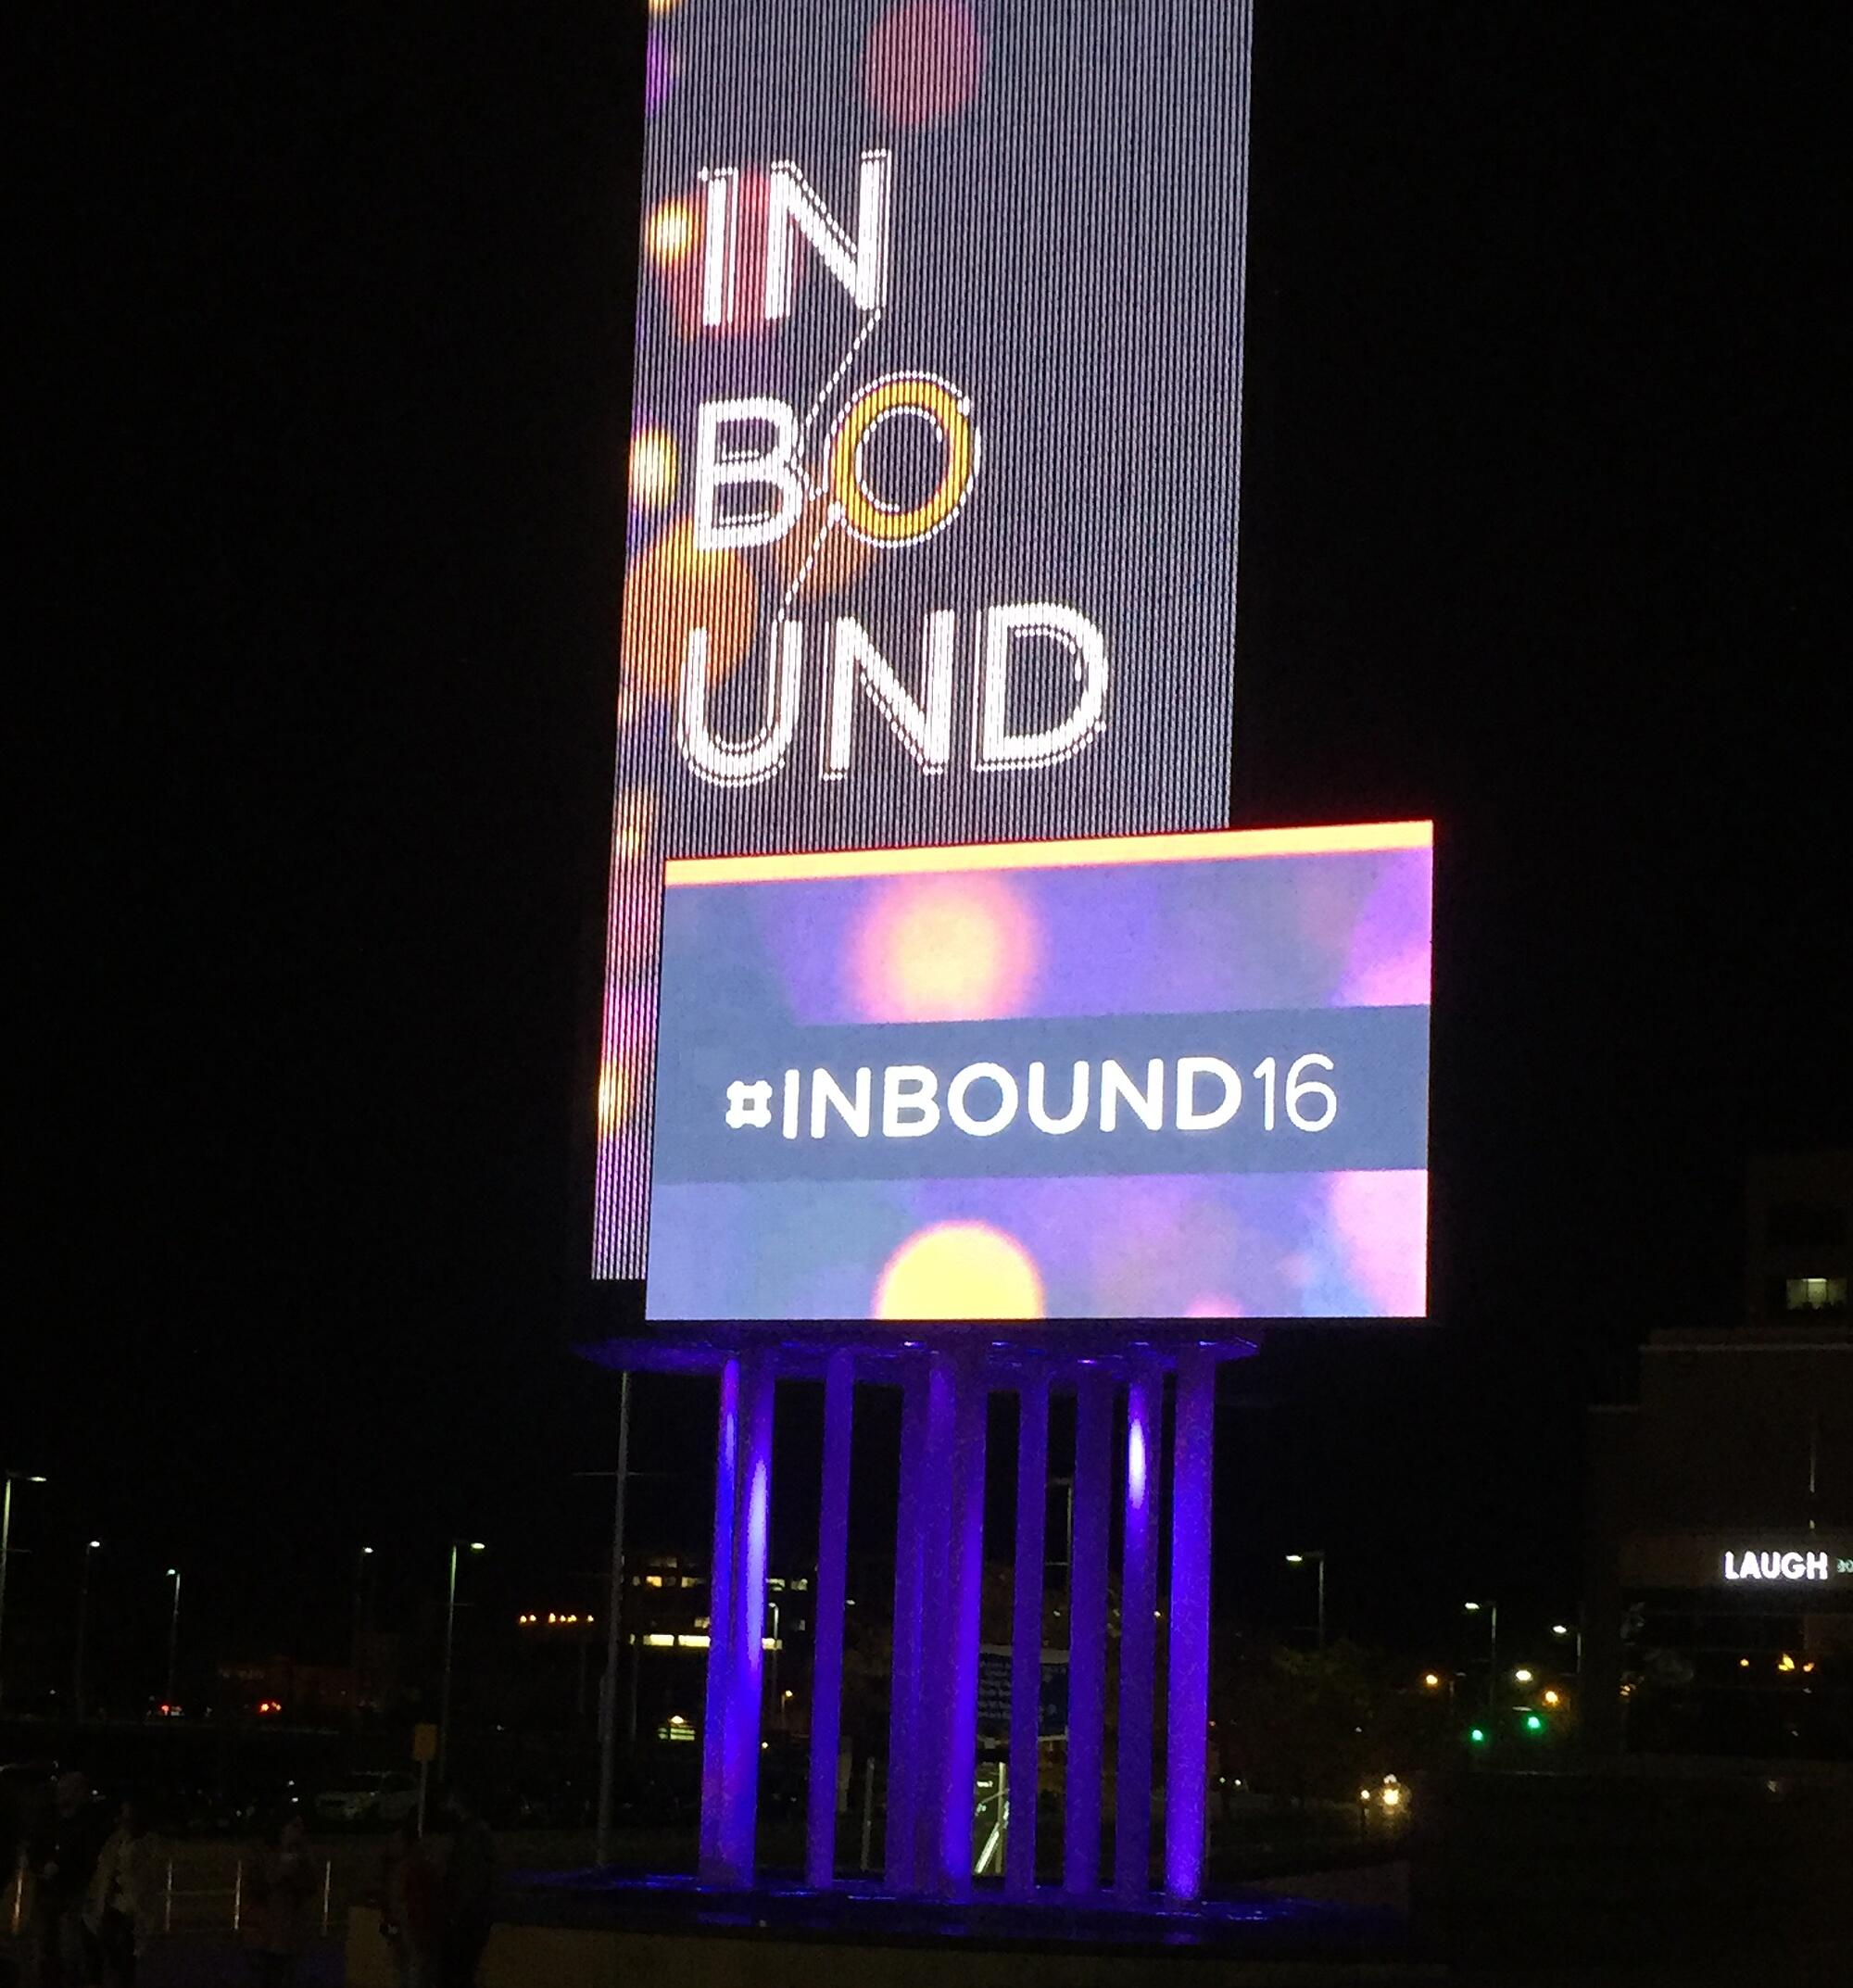 Reflections and snapshots from #INBOUND2016